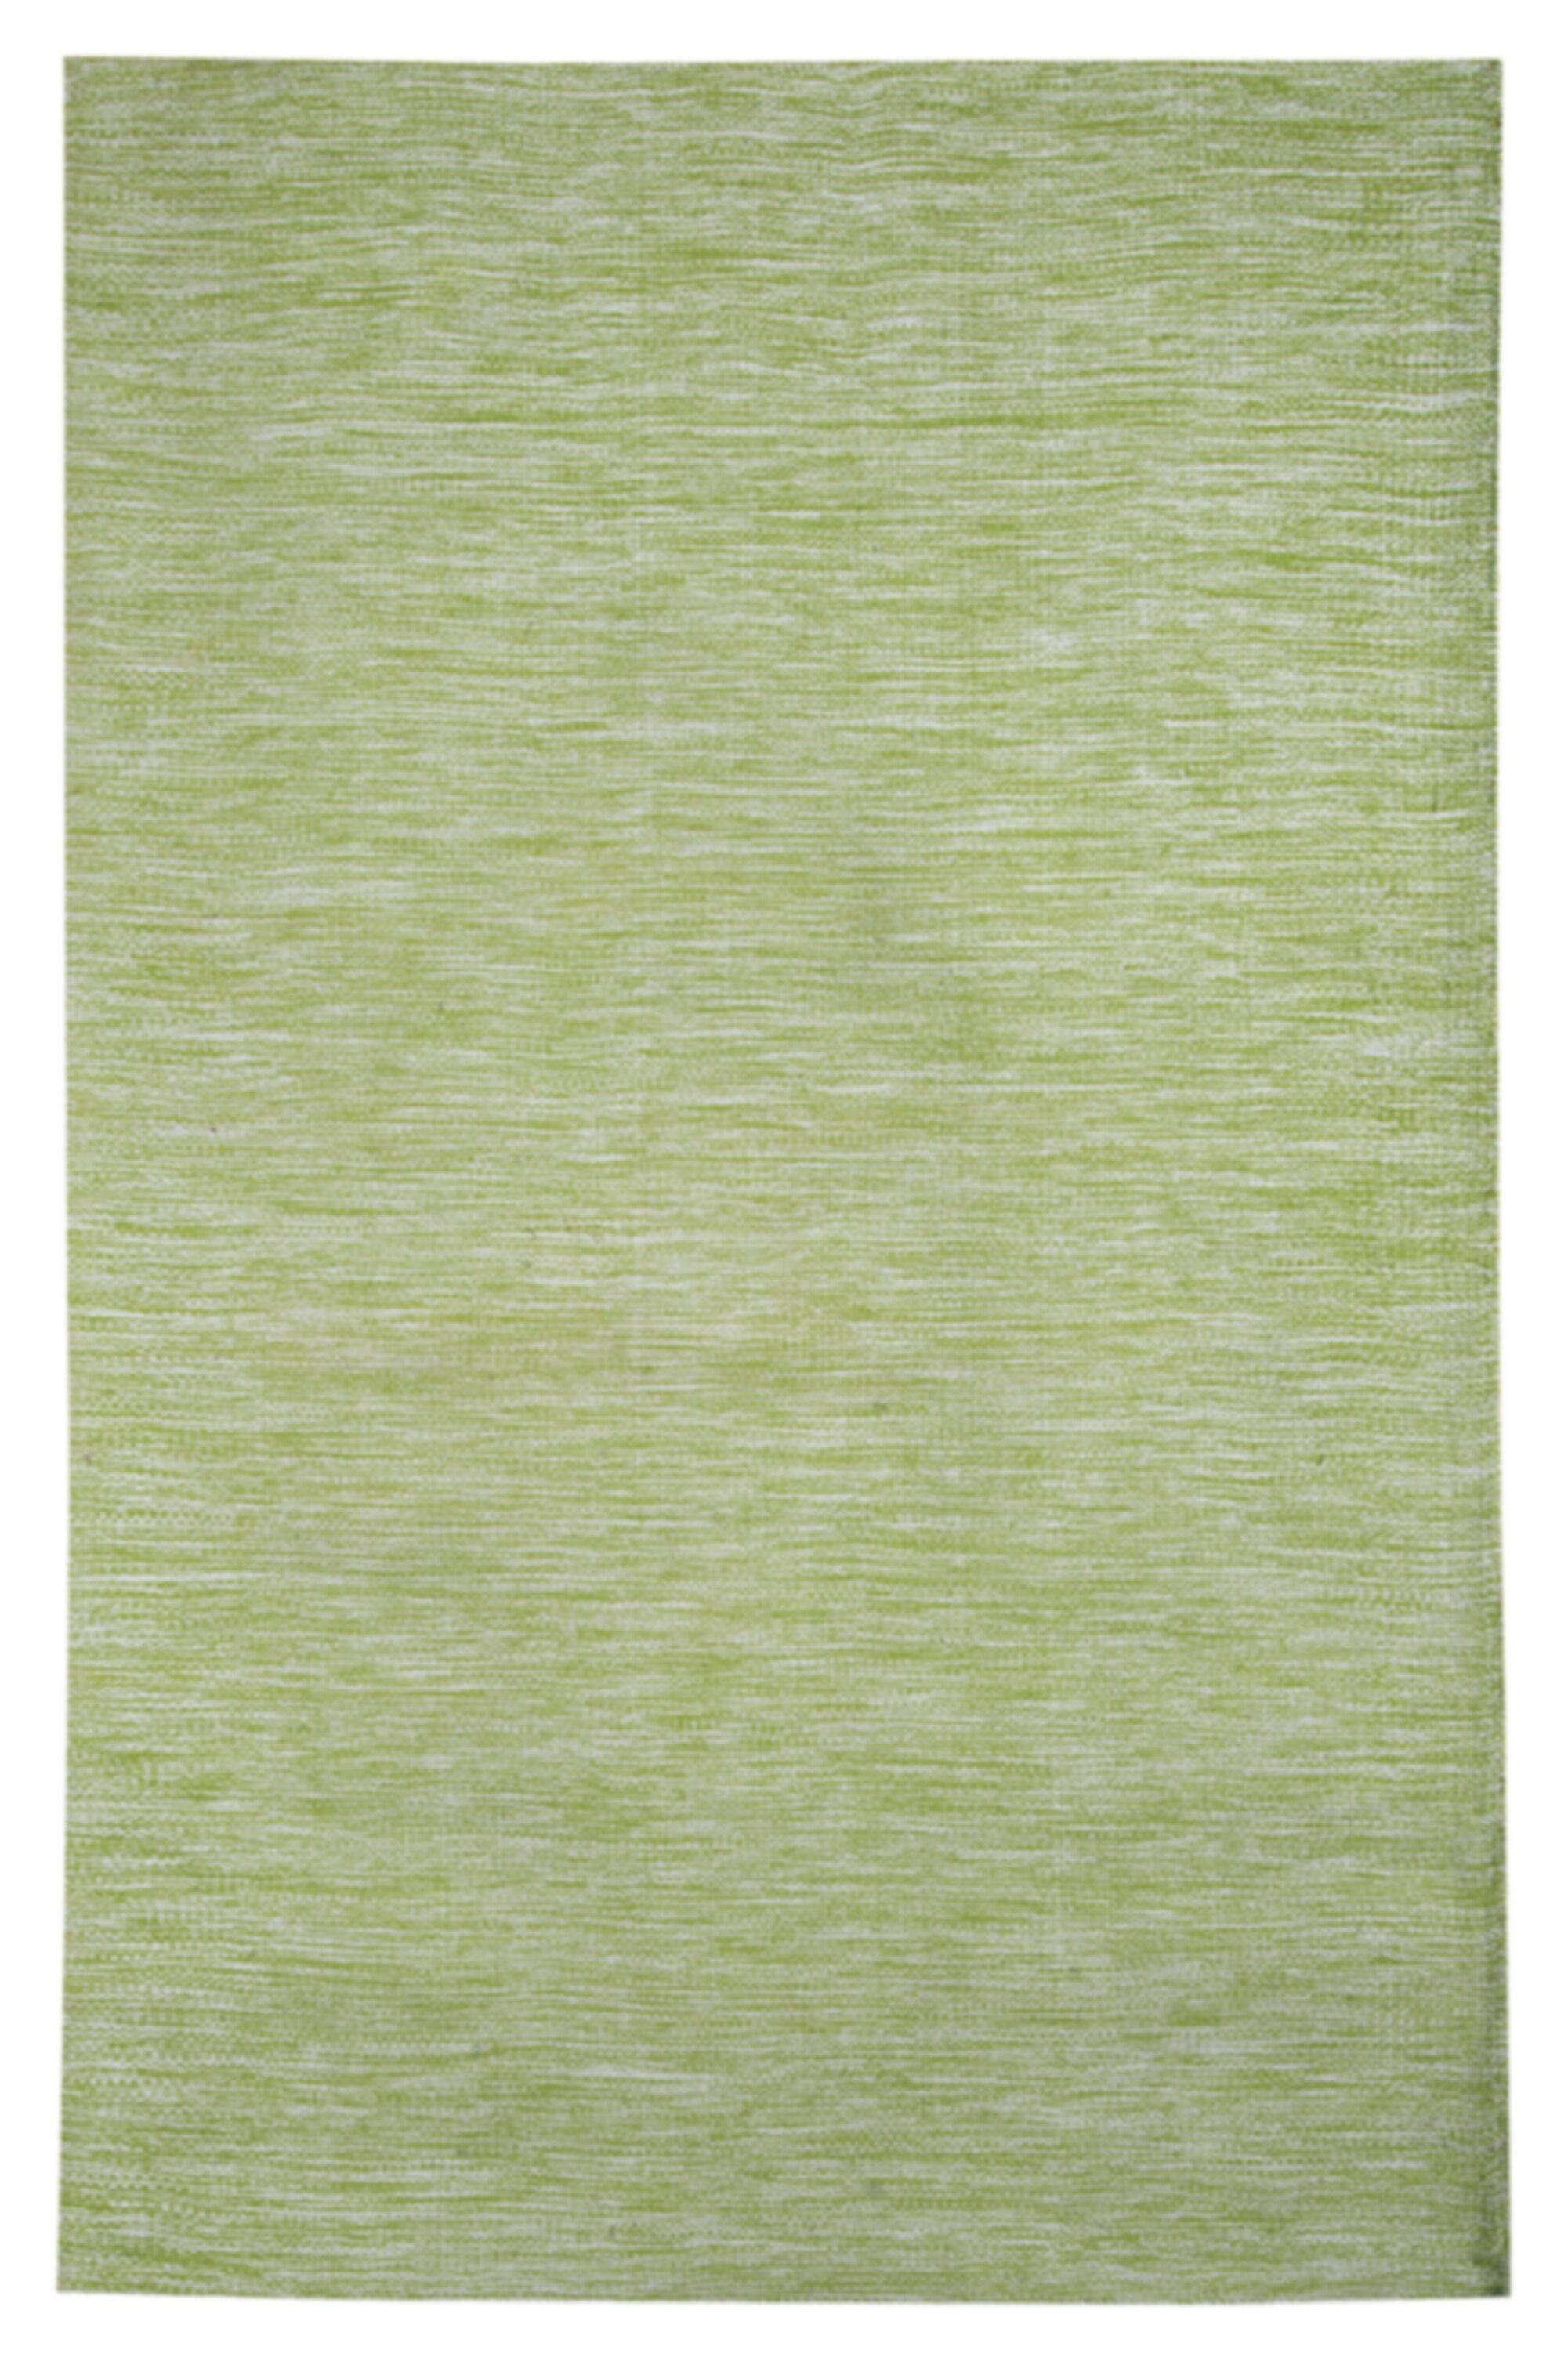 Della Handwoven Cotton Green Area Rug